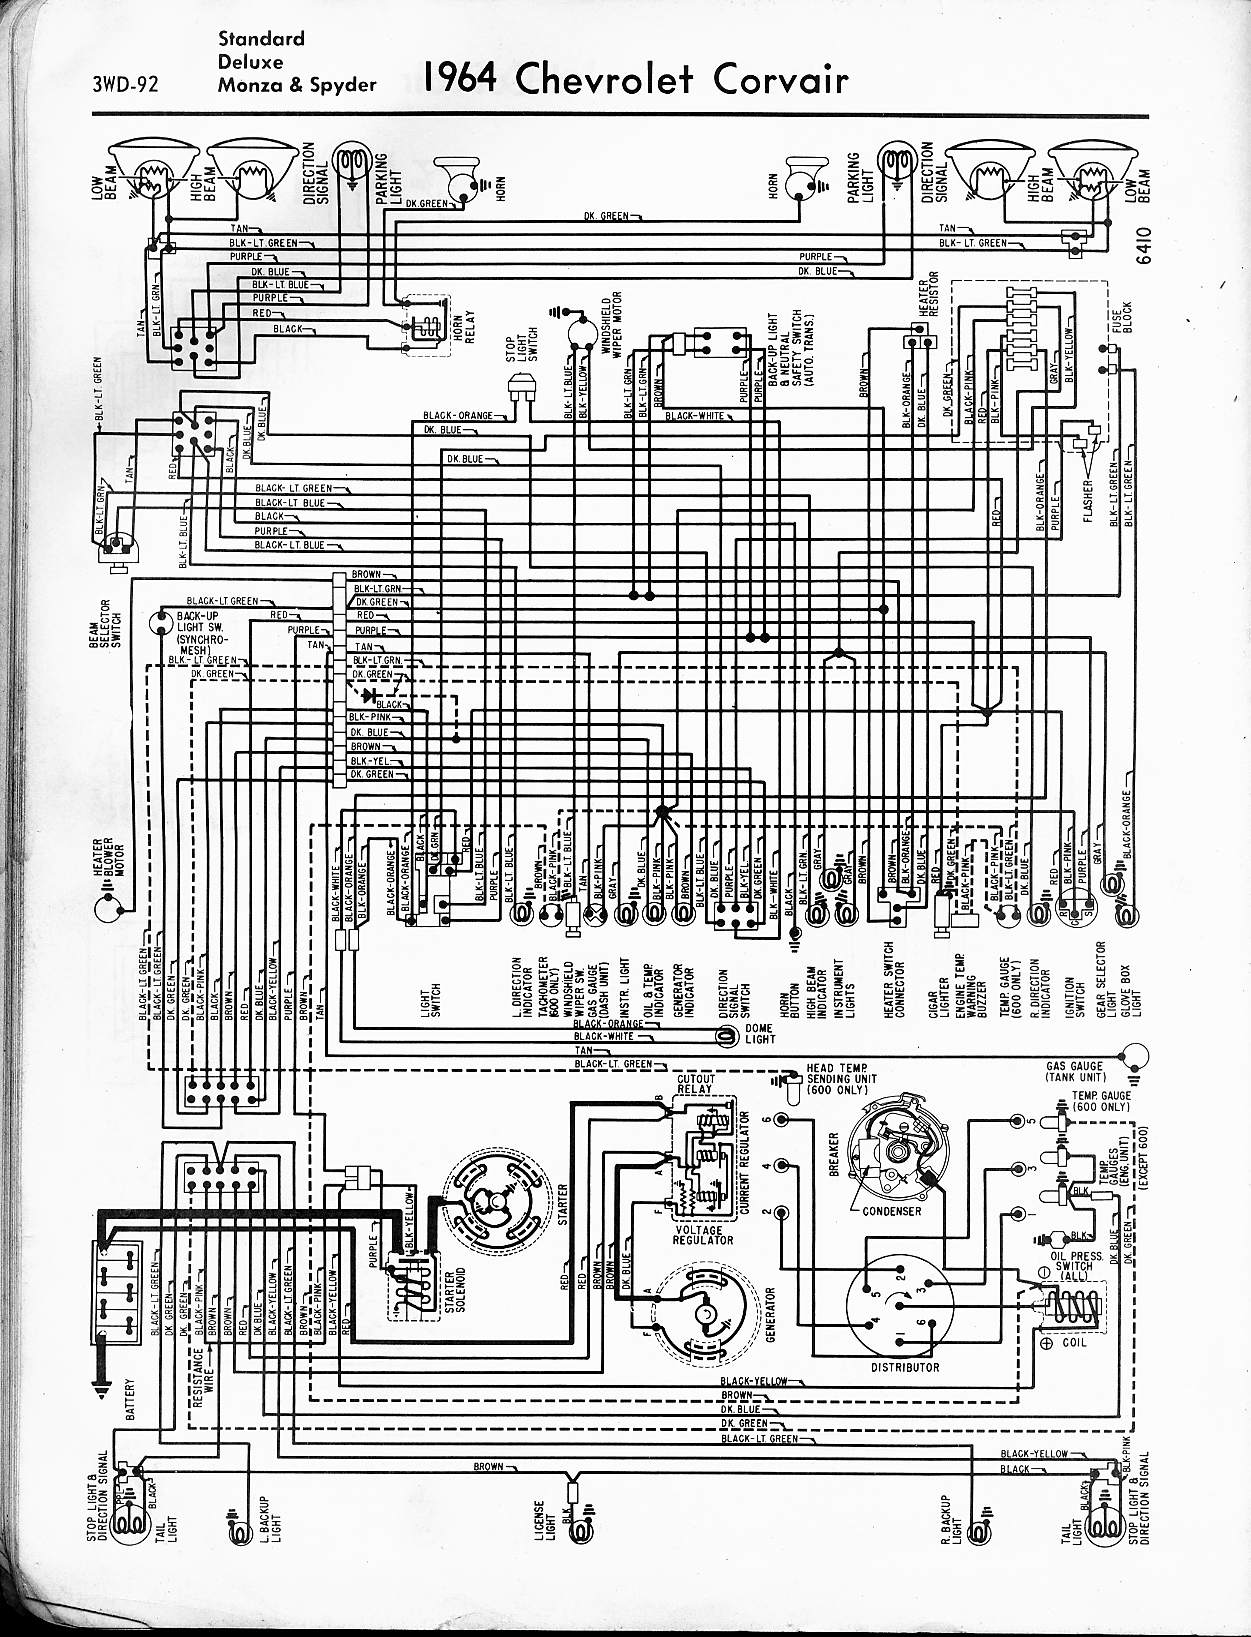 66 corvair wiring diagram 68 corvair wiring diagram